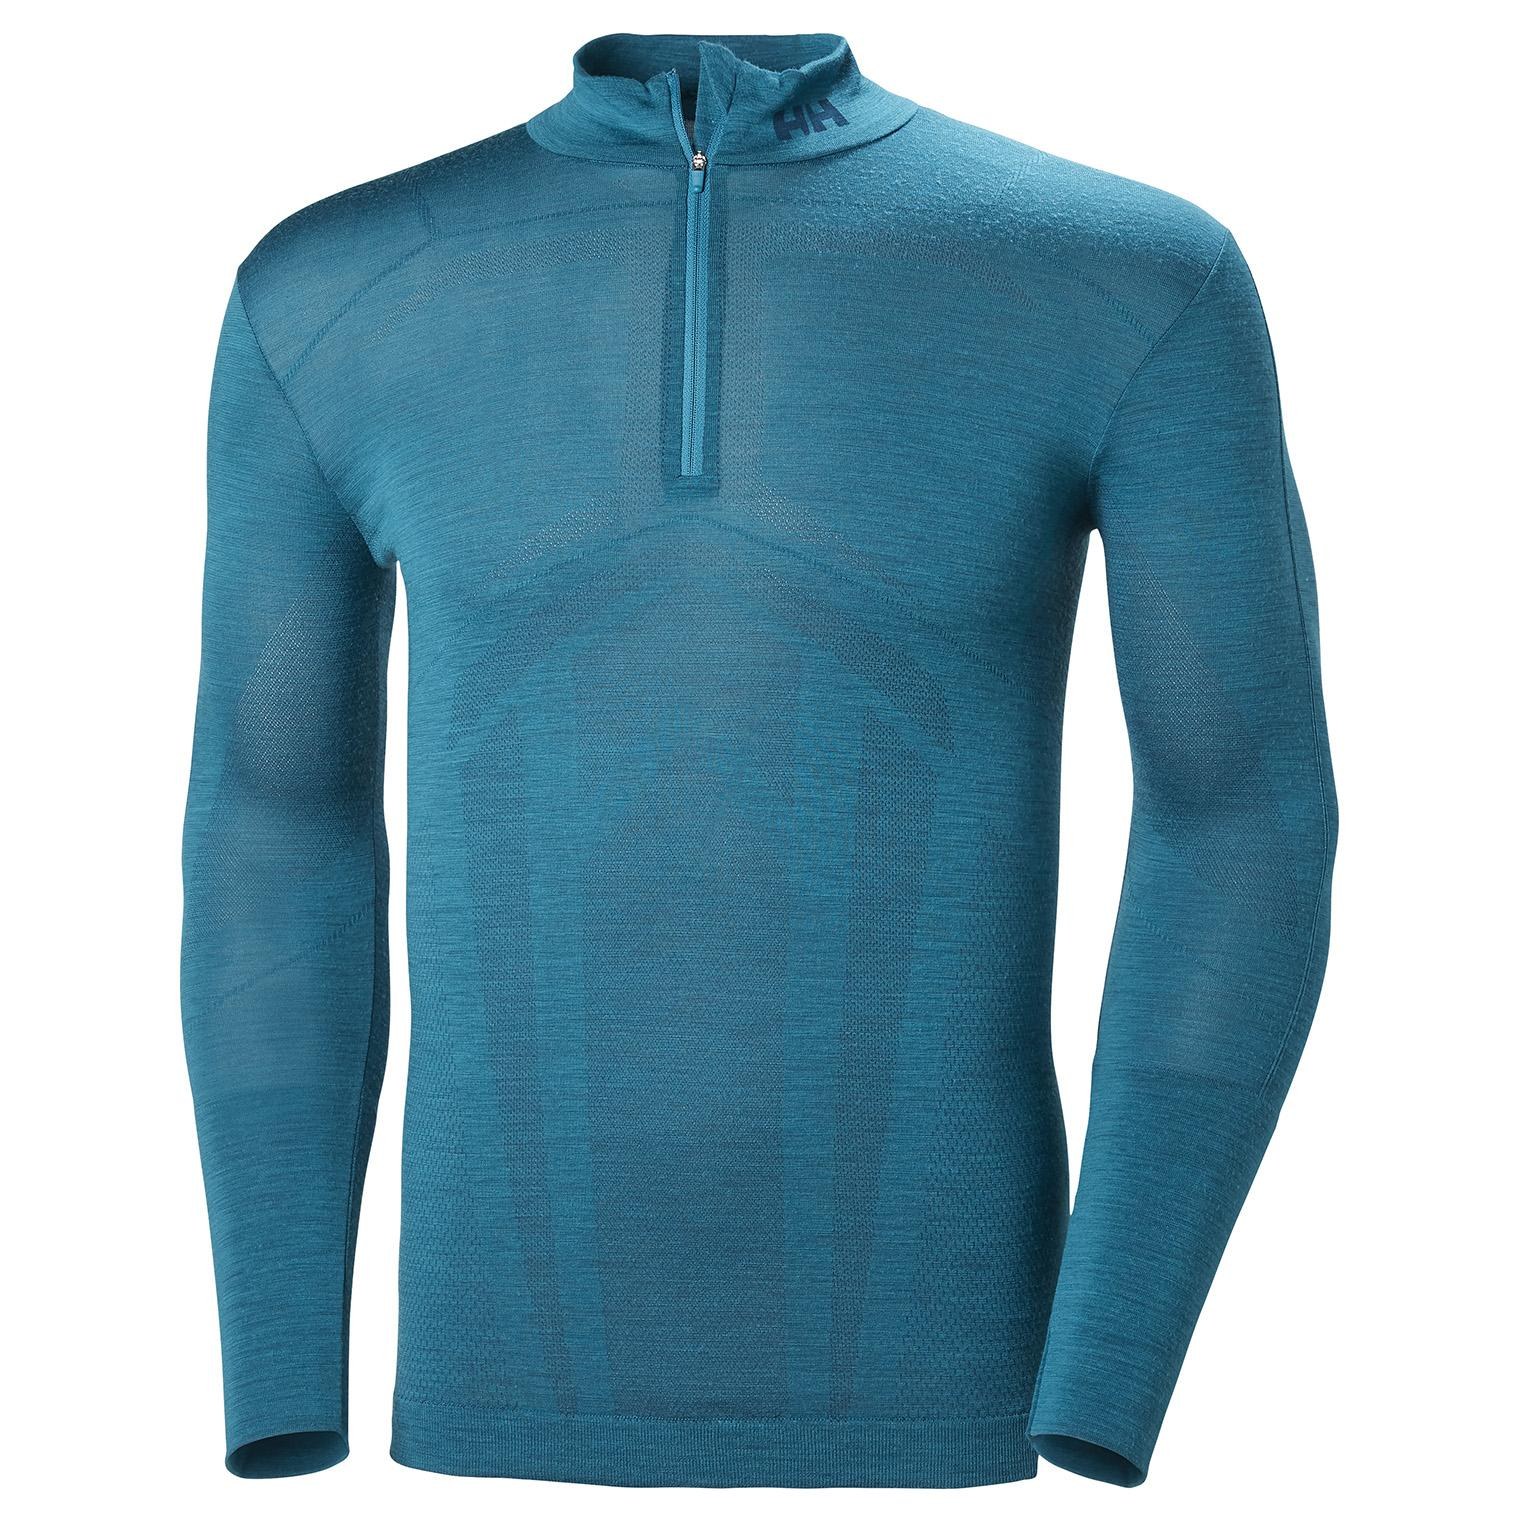 7ab14bc54d9a Lyst - Helly Hansen Hh Lifa Merino Seamless 1 2 Zi in Blue for Men